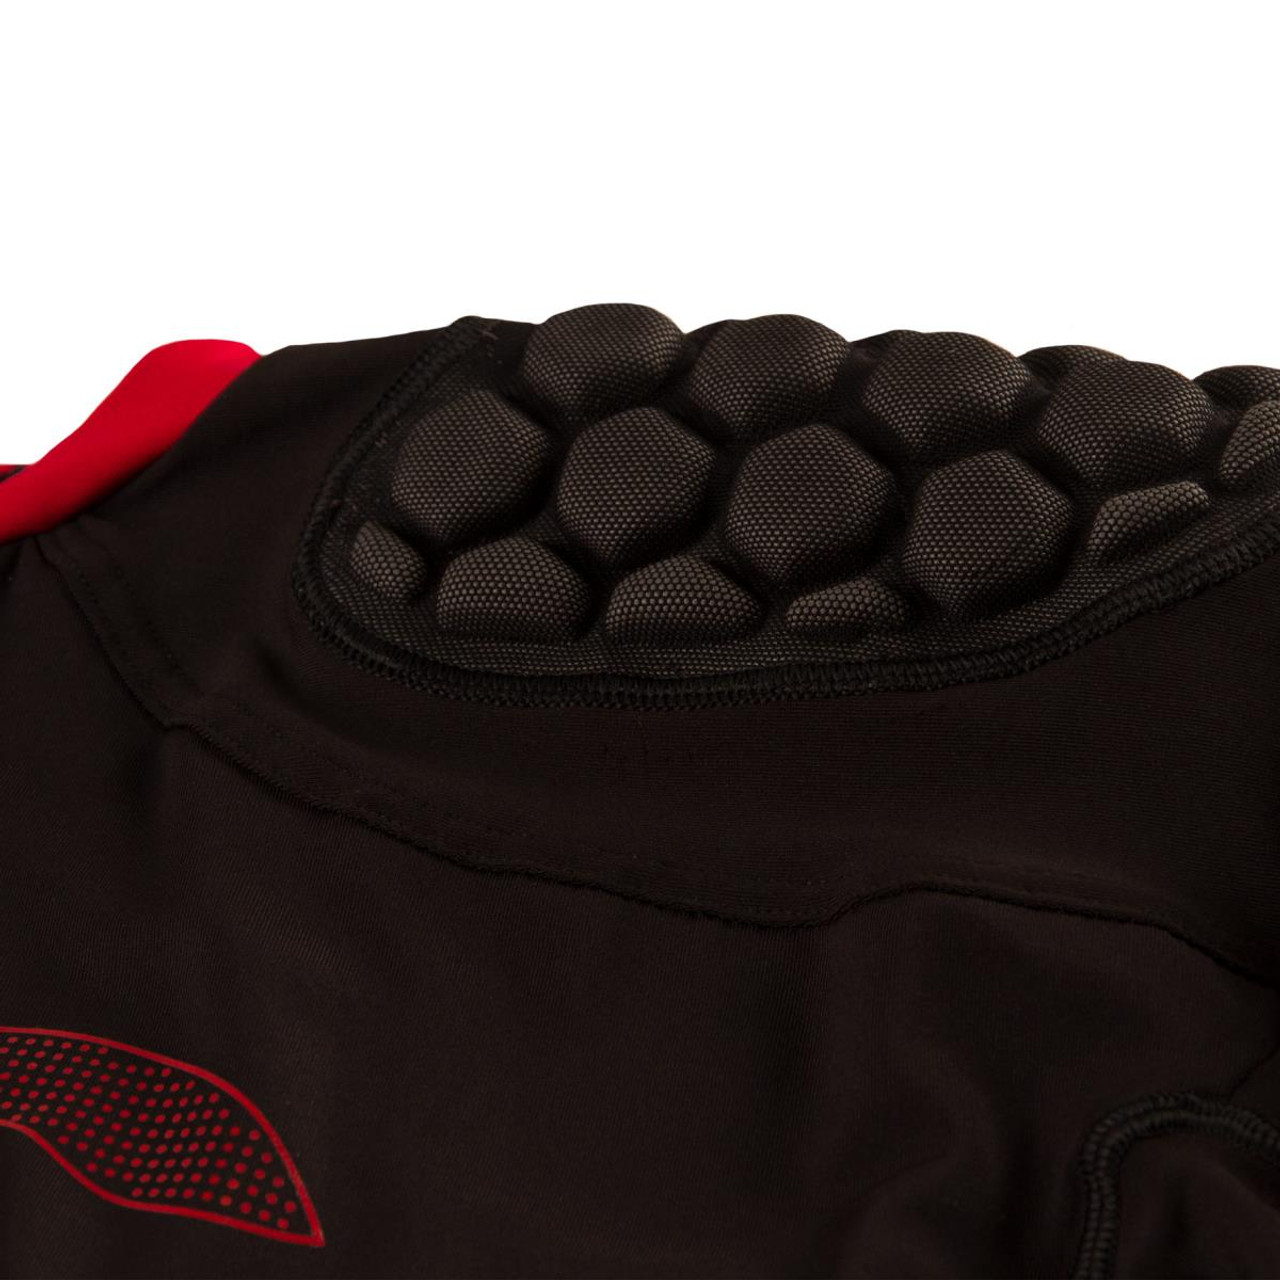 Cellular foam padding in the shoulder.